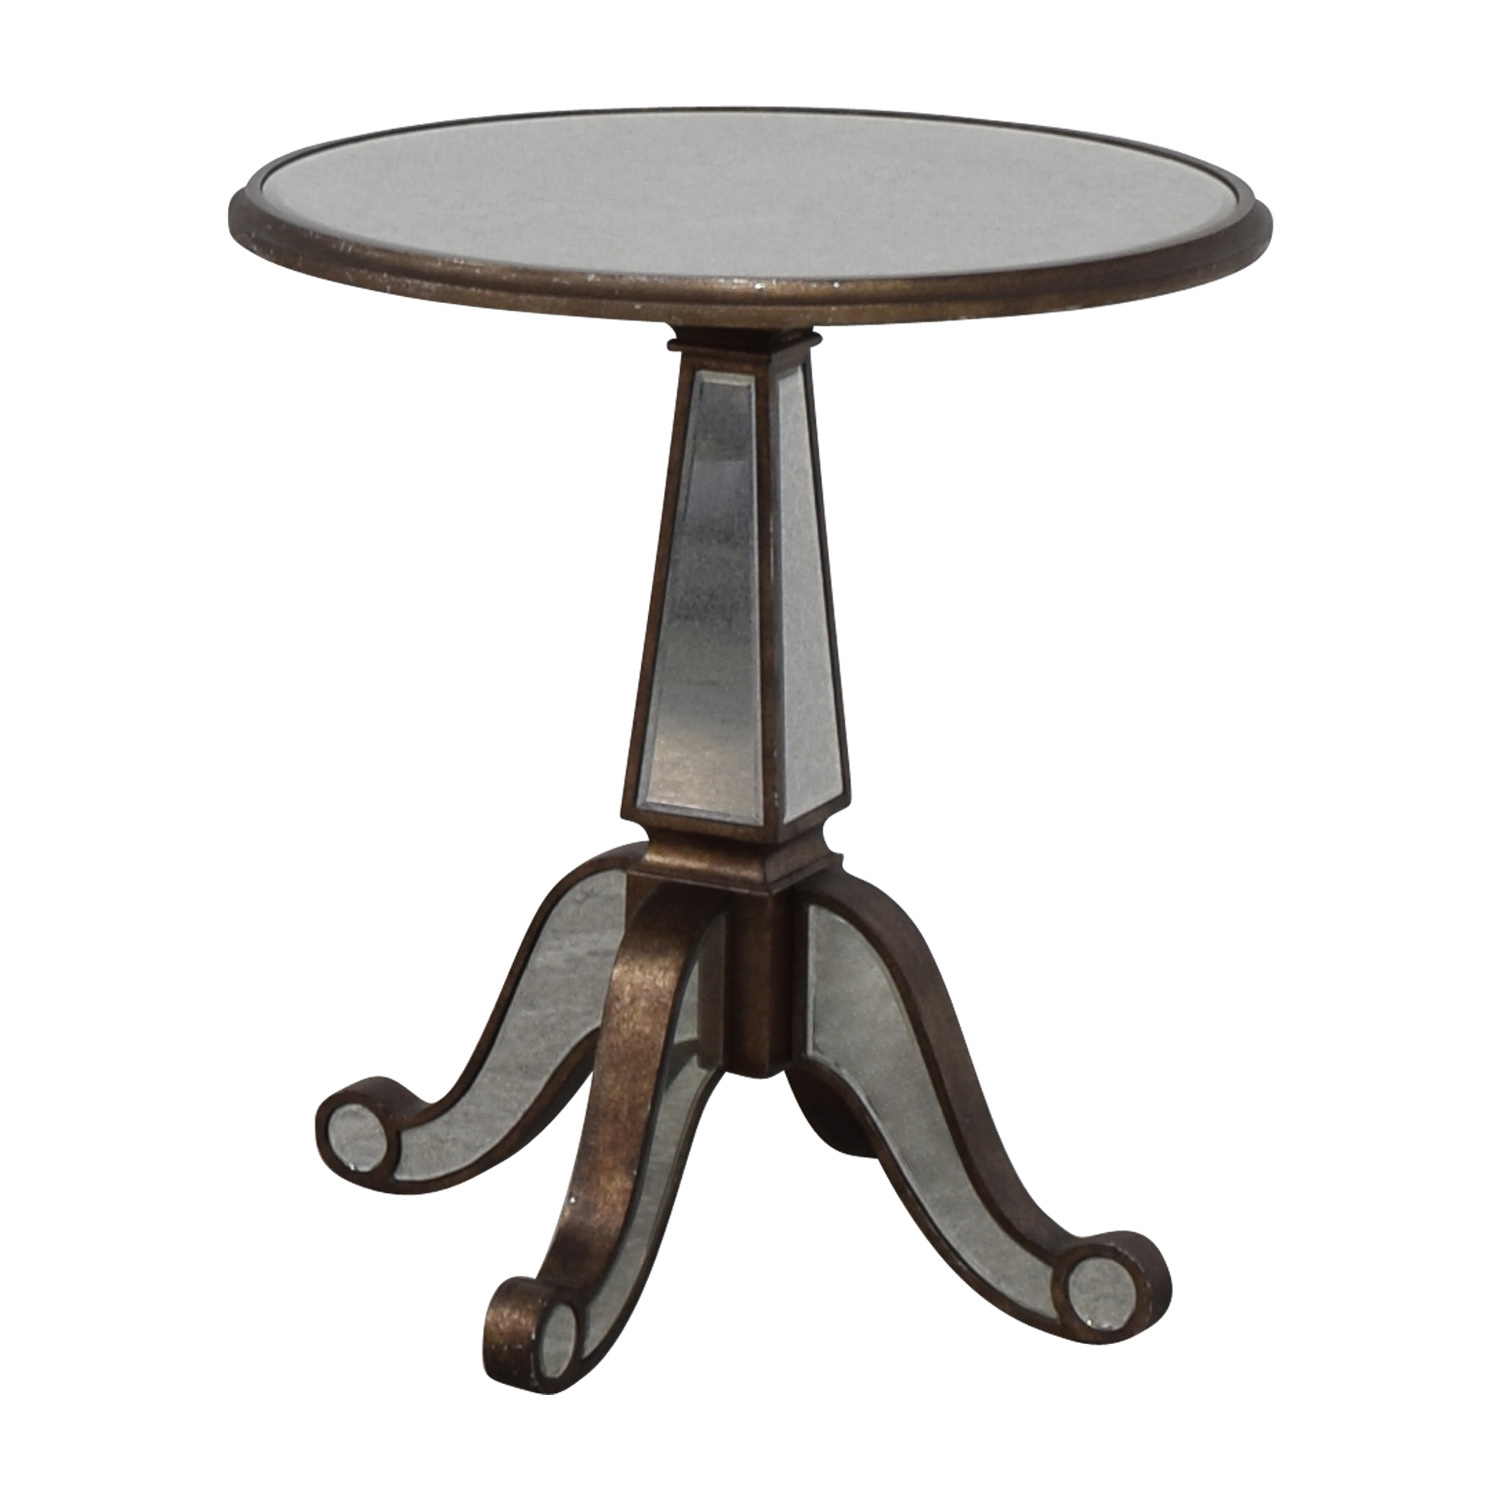 Horchow Horchow Michelle Round Mirrored Table on sale